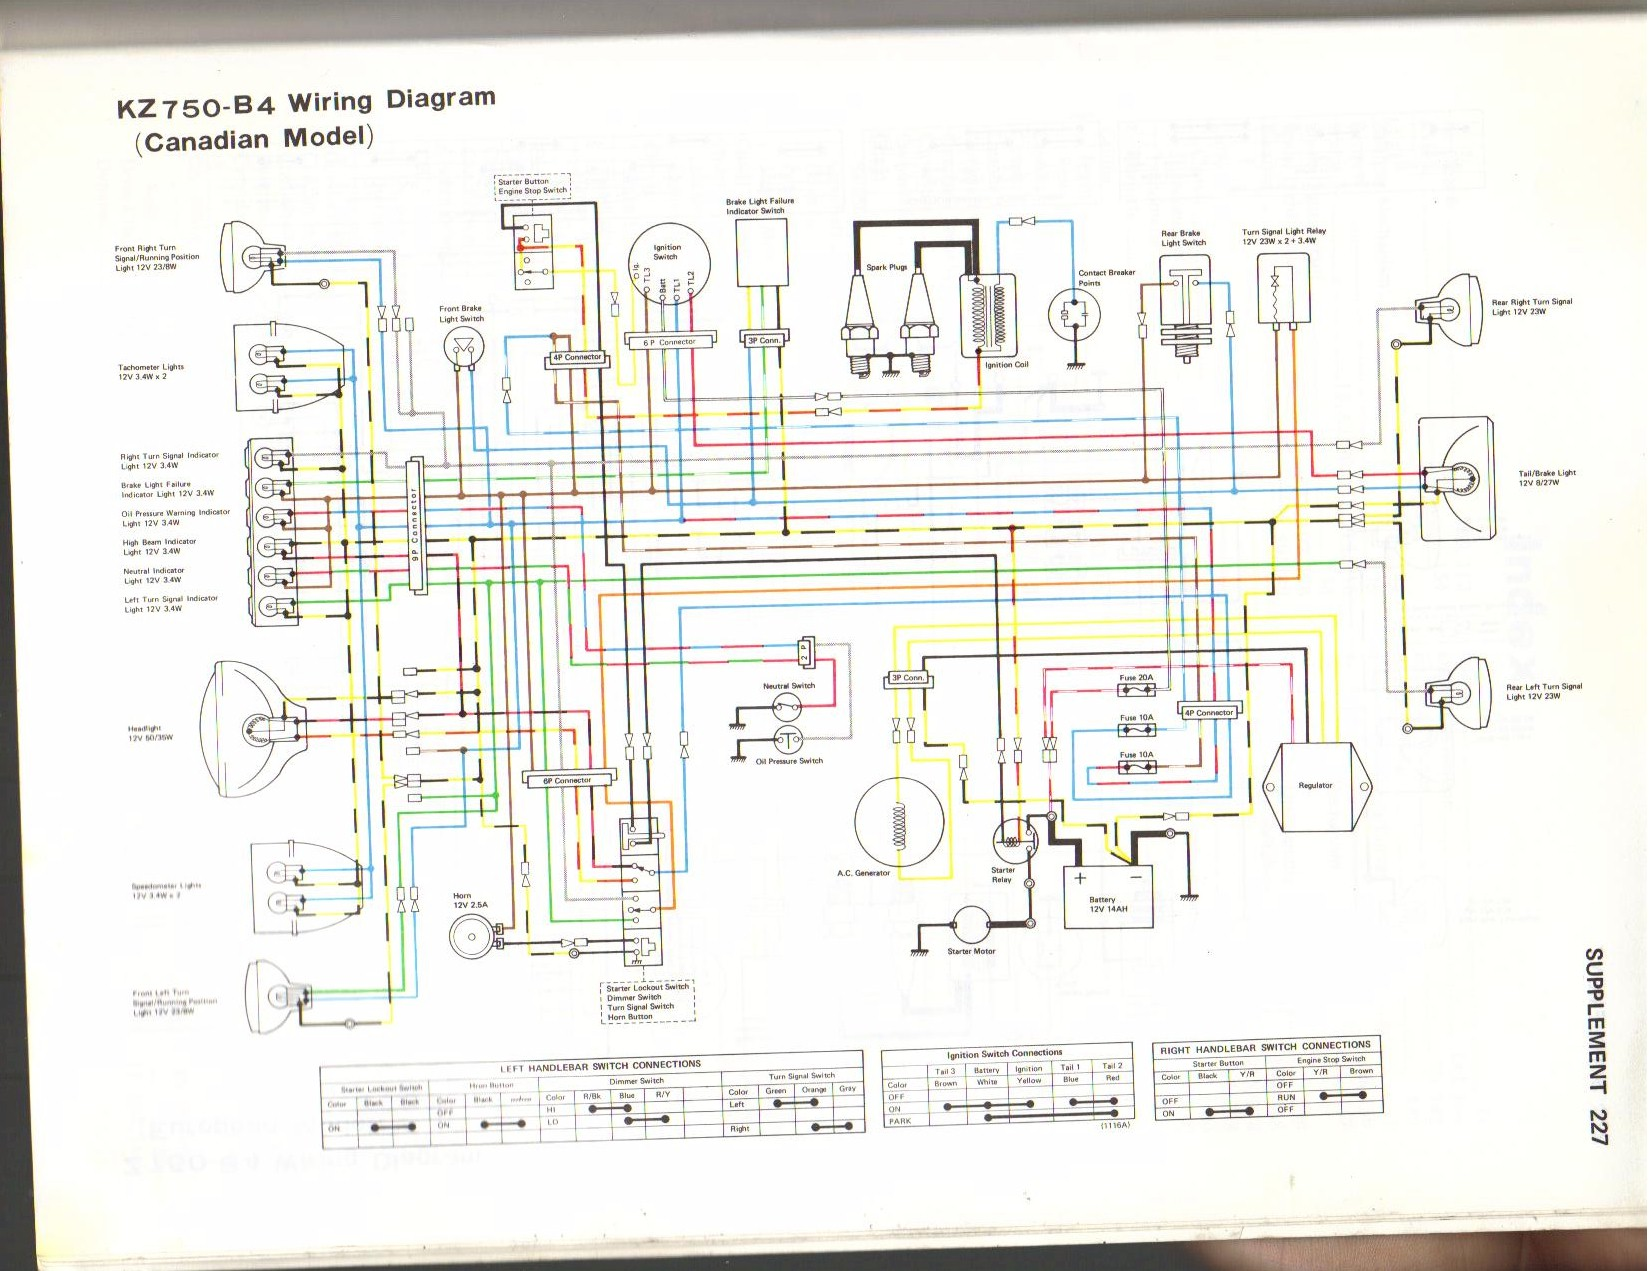 1980 turbo trans am wiring diagram trusted wiring diagrams u2022 rh sivamuni com 1977 Firebird Wiring Diagram 75 Trans AM Wiring Diagram